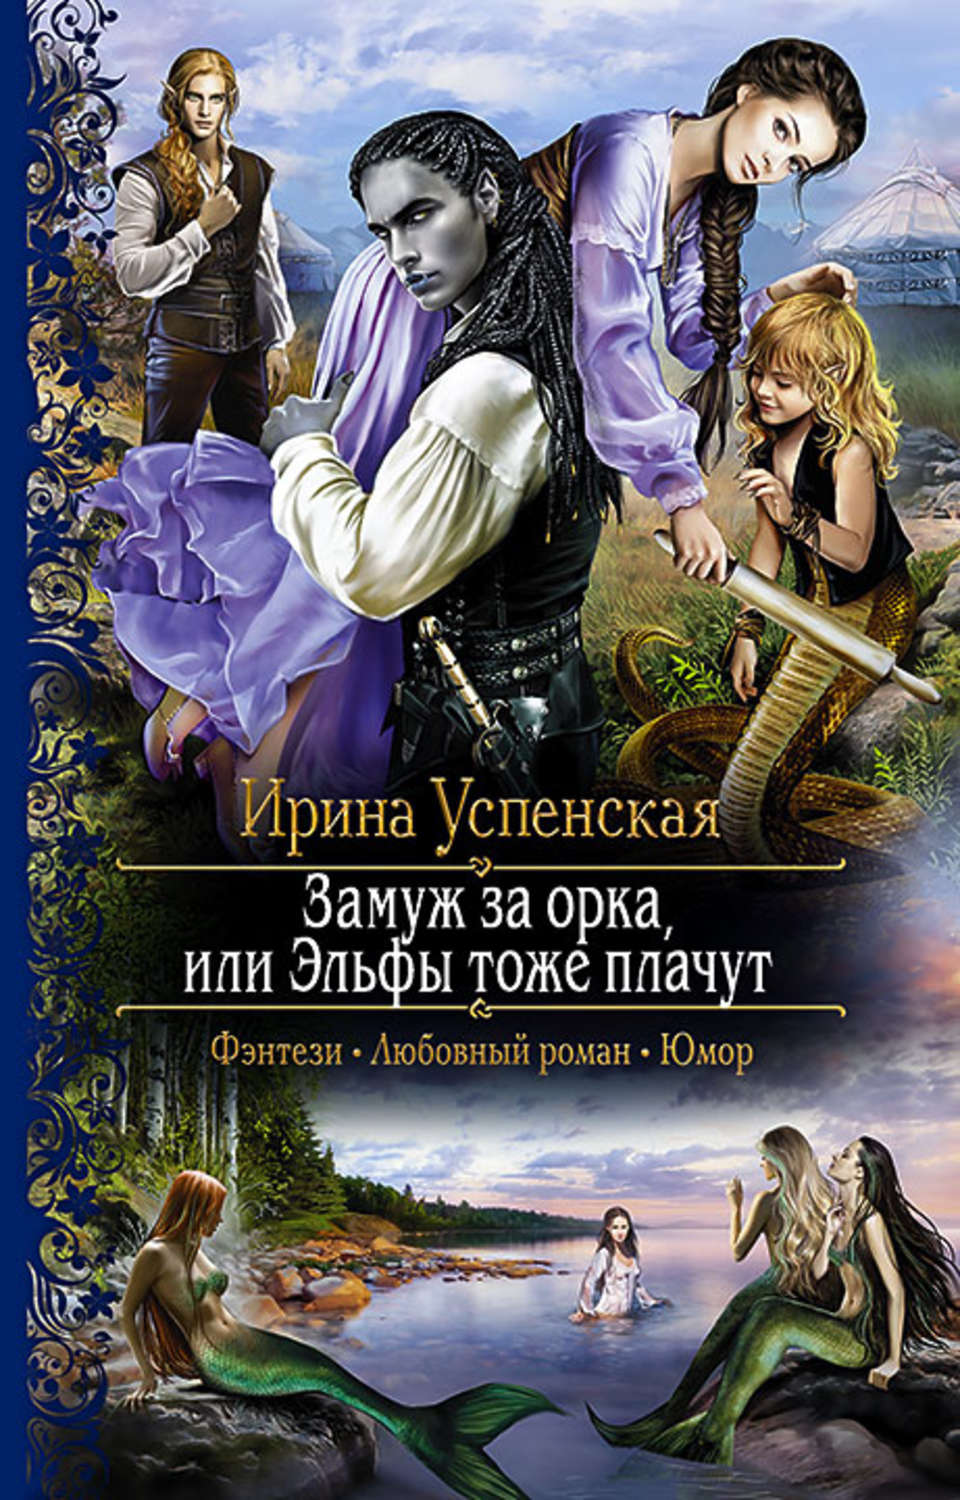 Blood of the elves ebook torrent sex pic